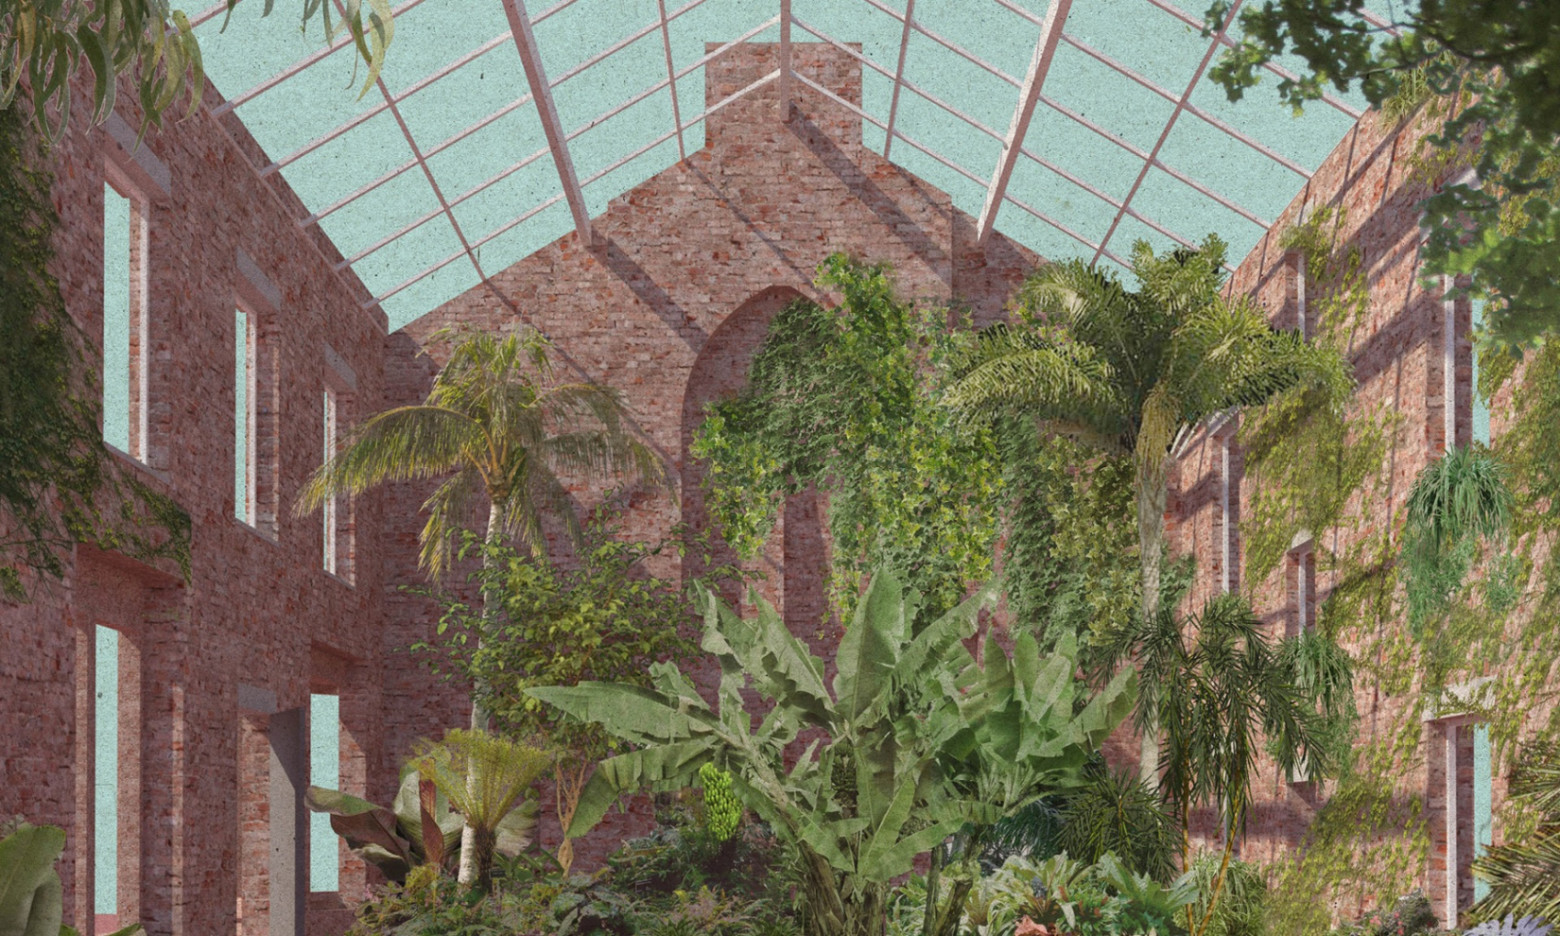 Assembles winter garden at Granby 4 Streets project